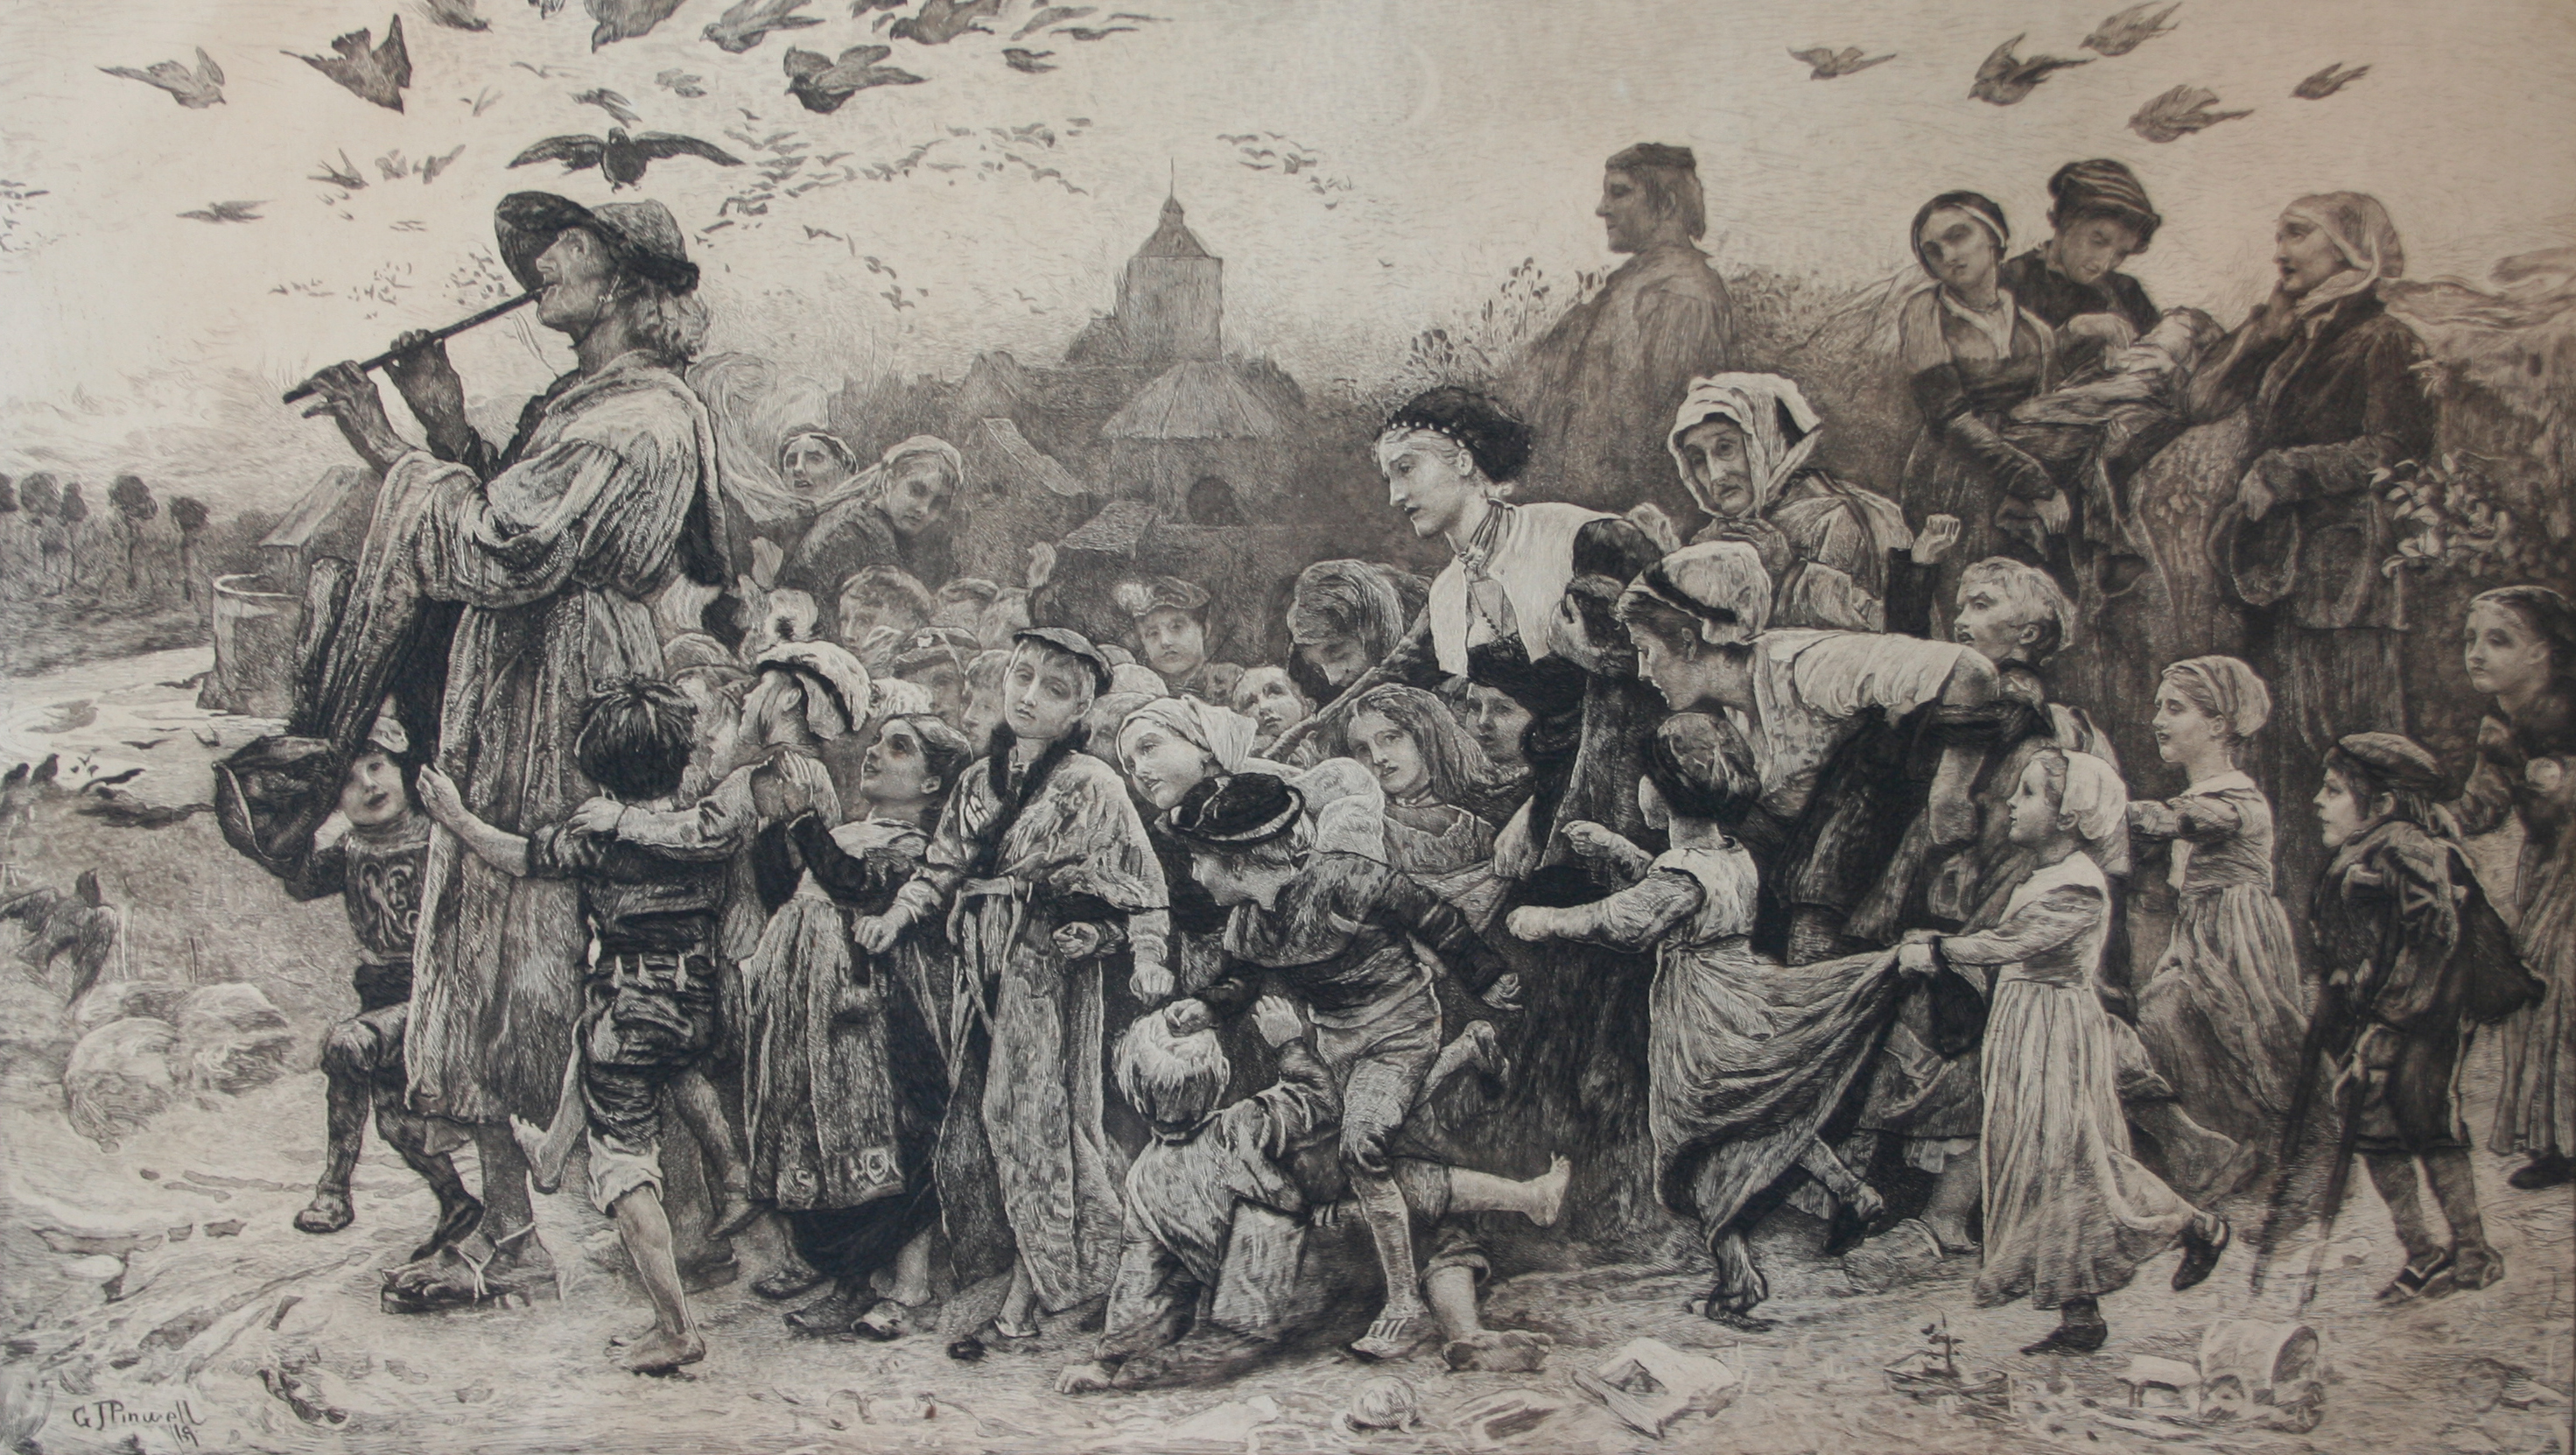 'The Beguiling of the Children'